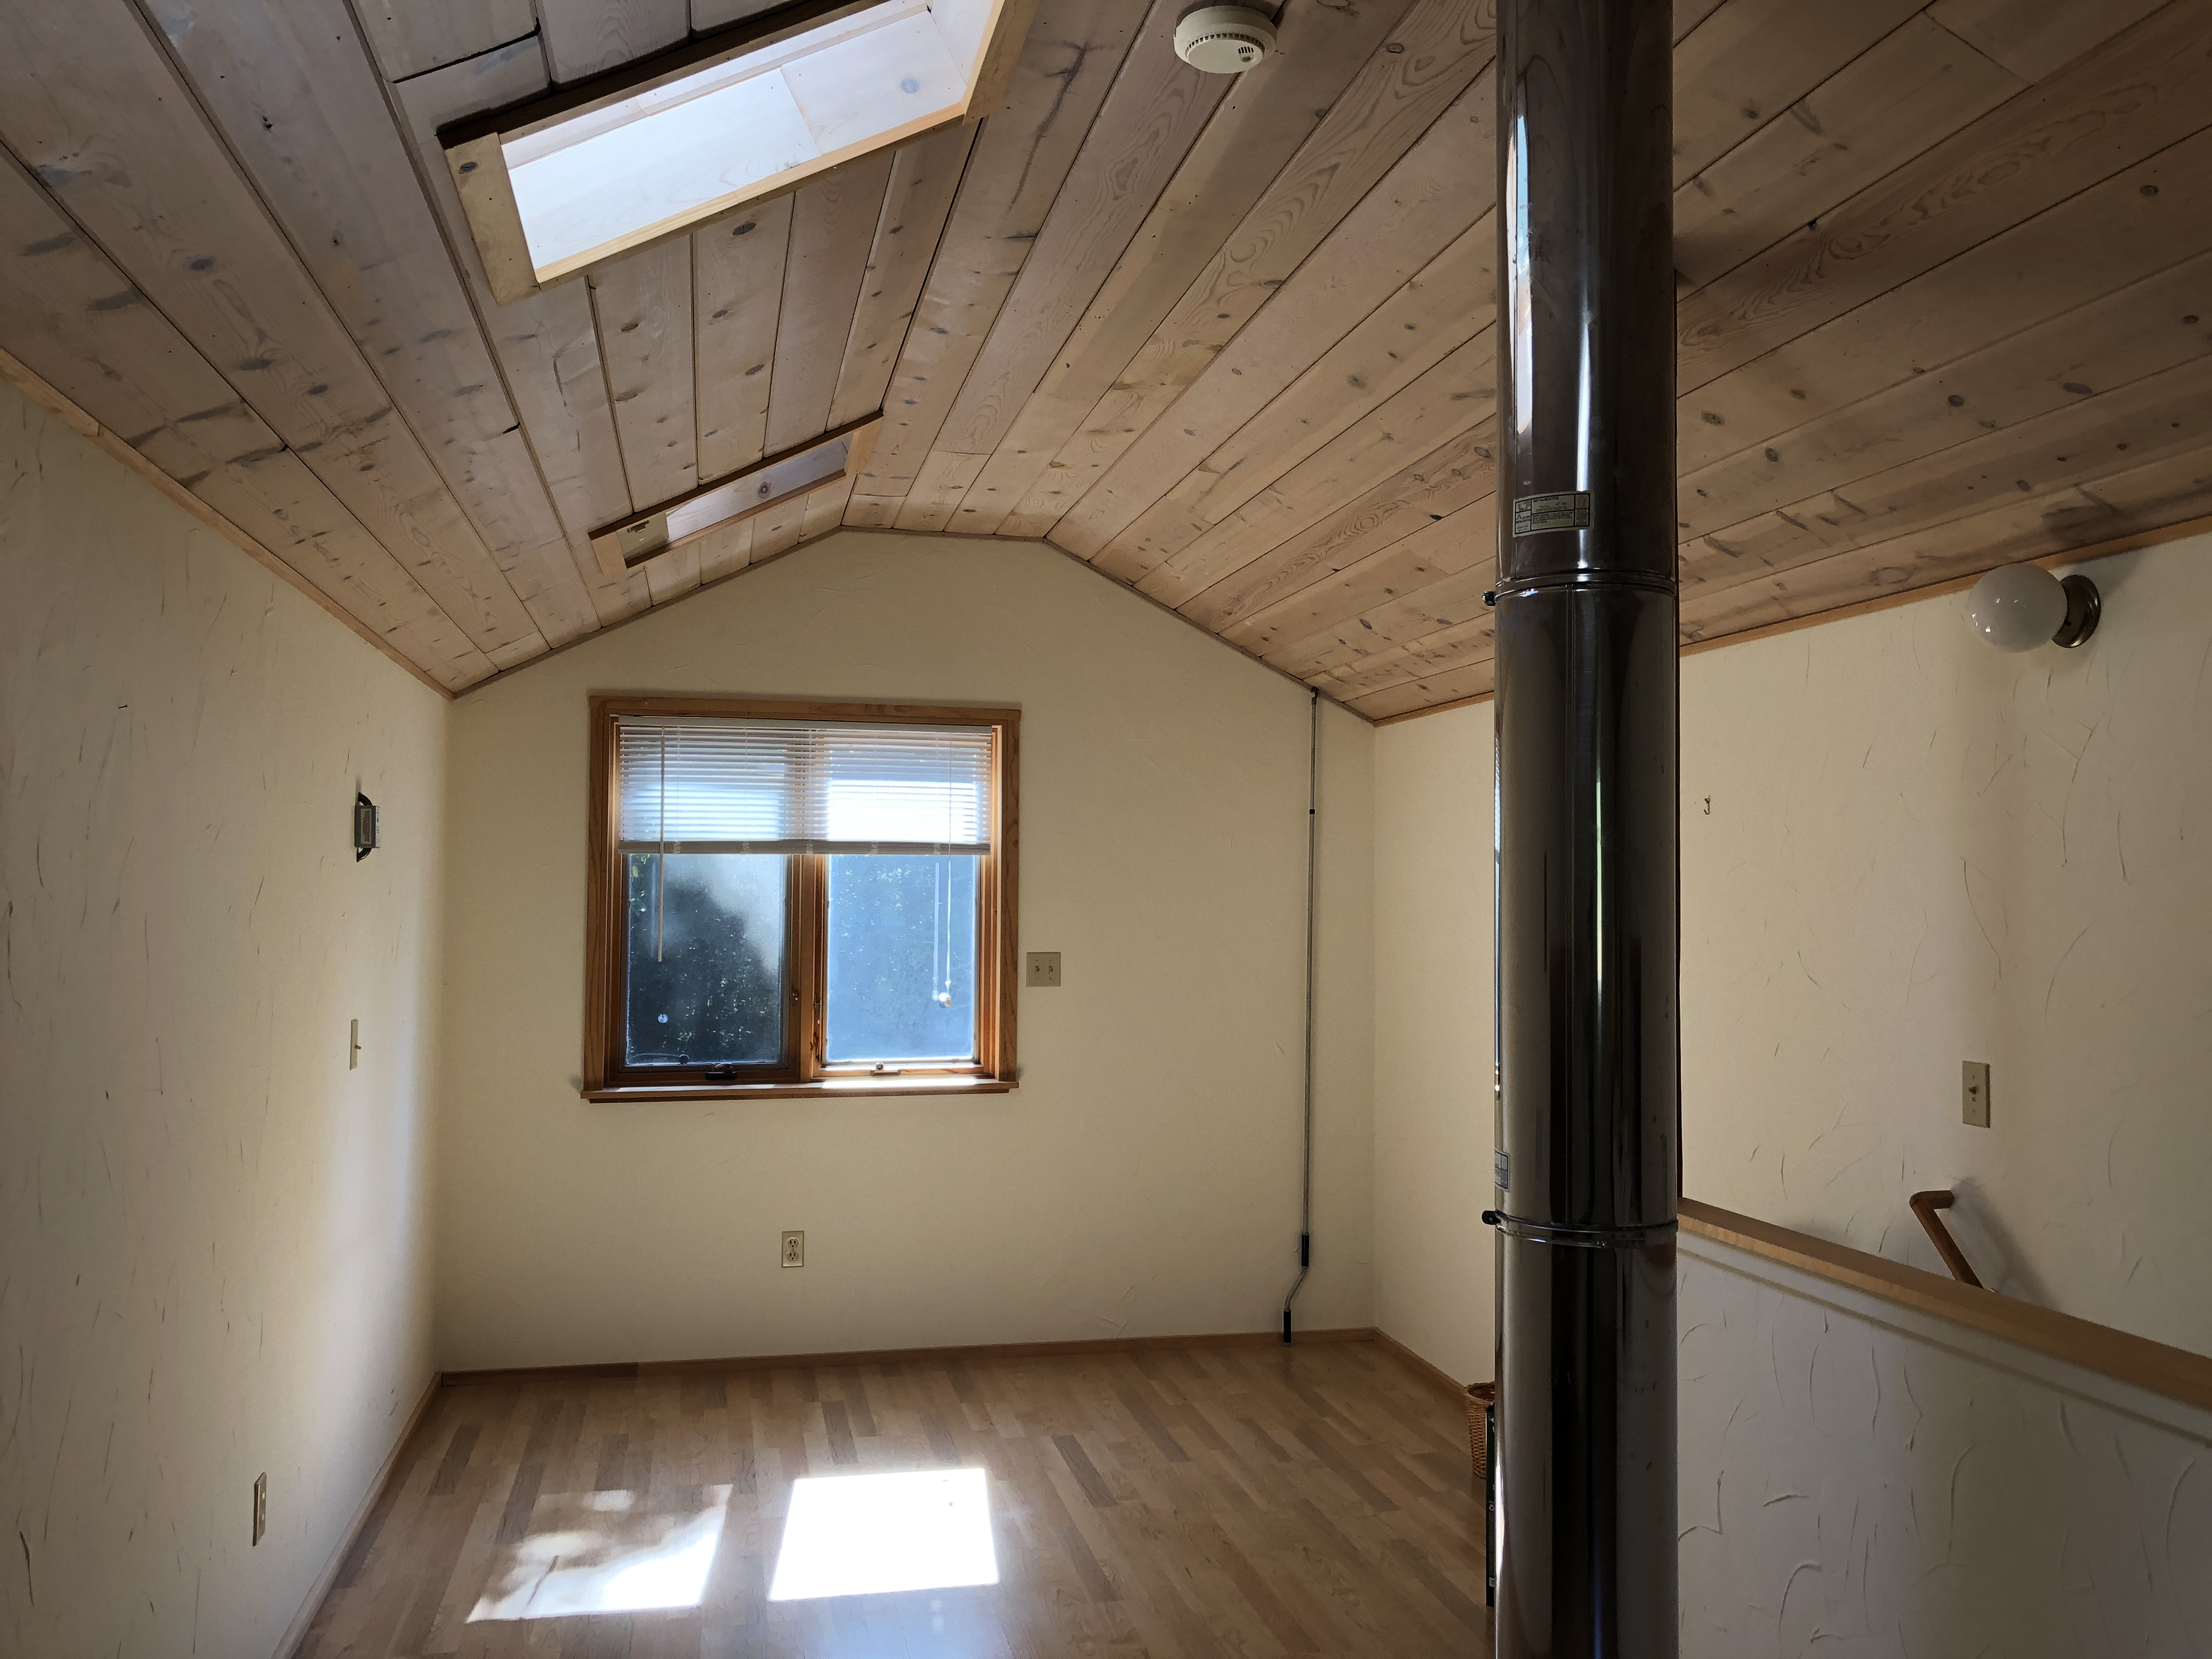 Finished attic - perfect space for a craft room, yoga space or home office